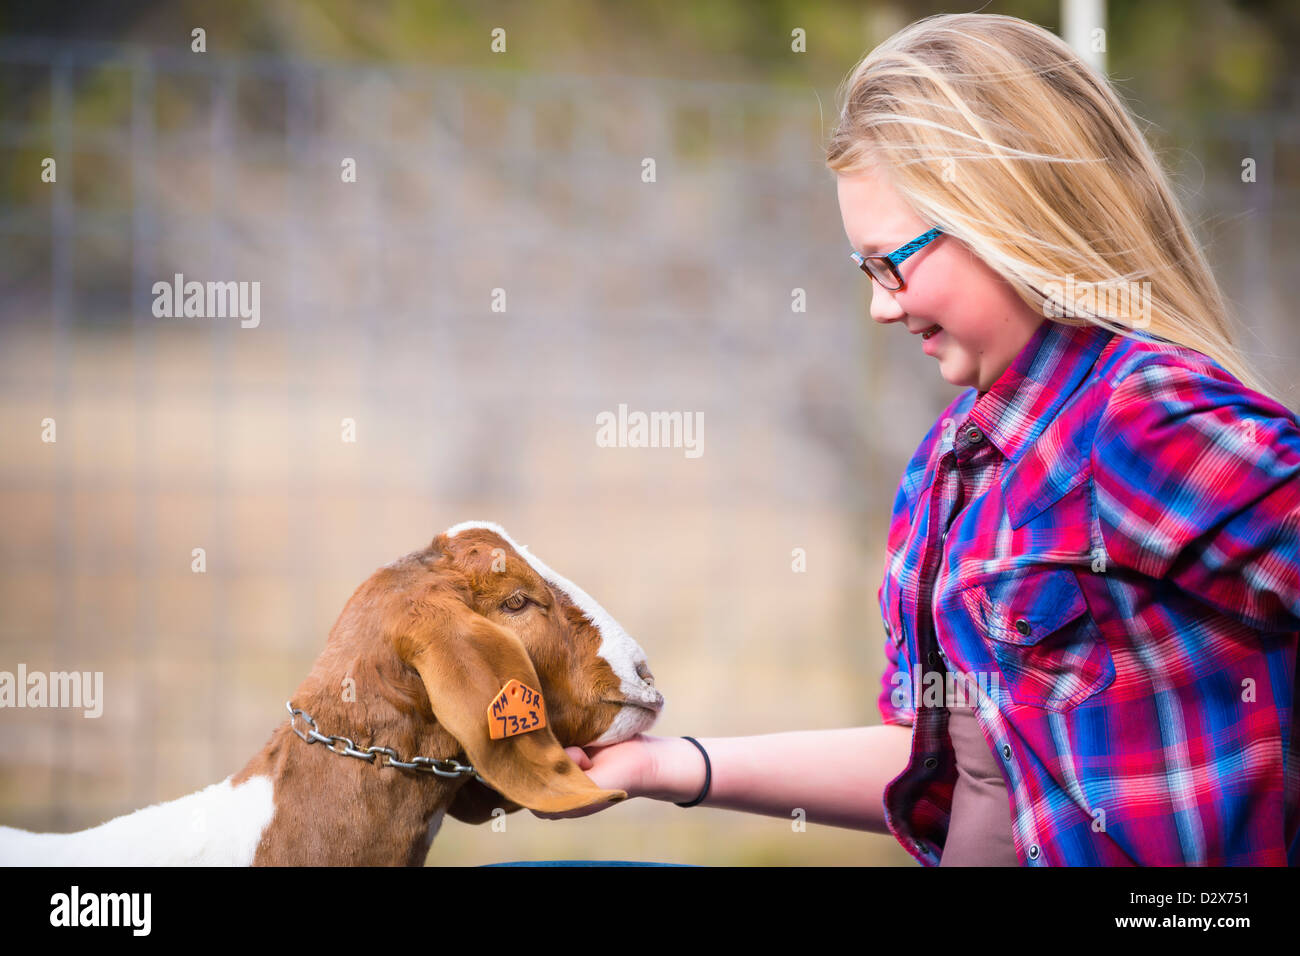 Girl and Goat - Stock Image